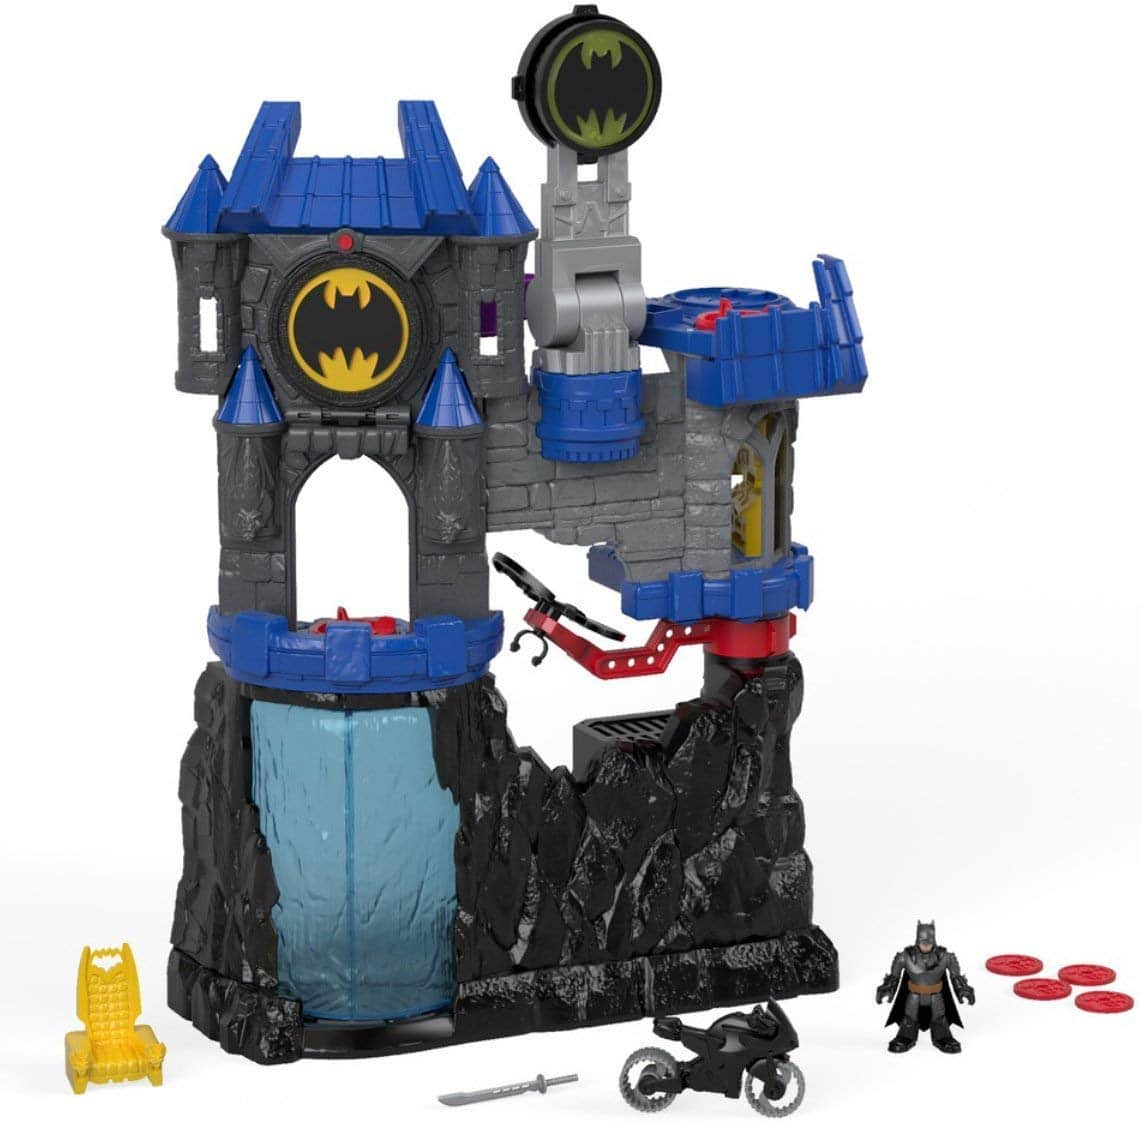 Fisher-Price Imaginext DC Super Friends, Wayne Manor Batcave - Top Toys and Gifts for Four Year Old Boys 1